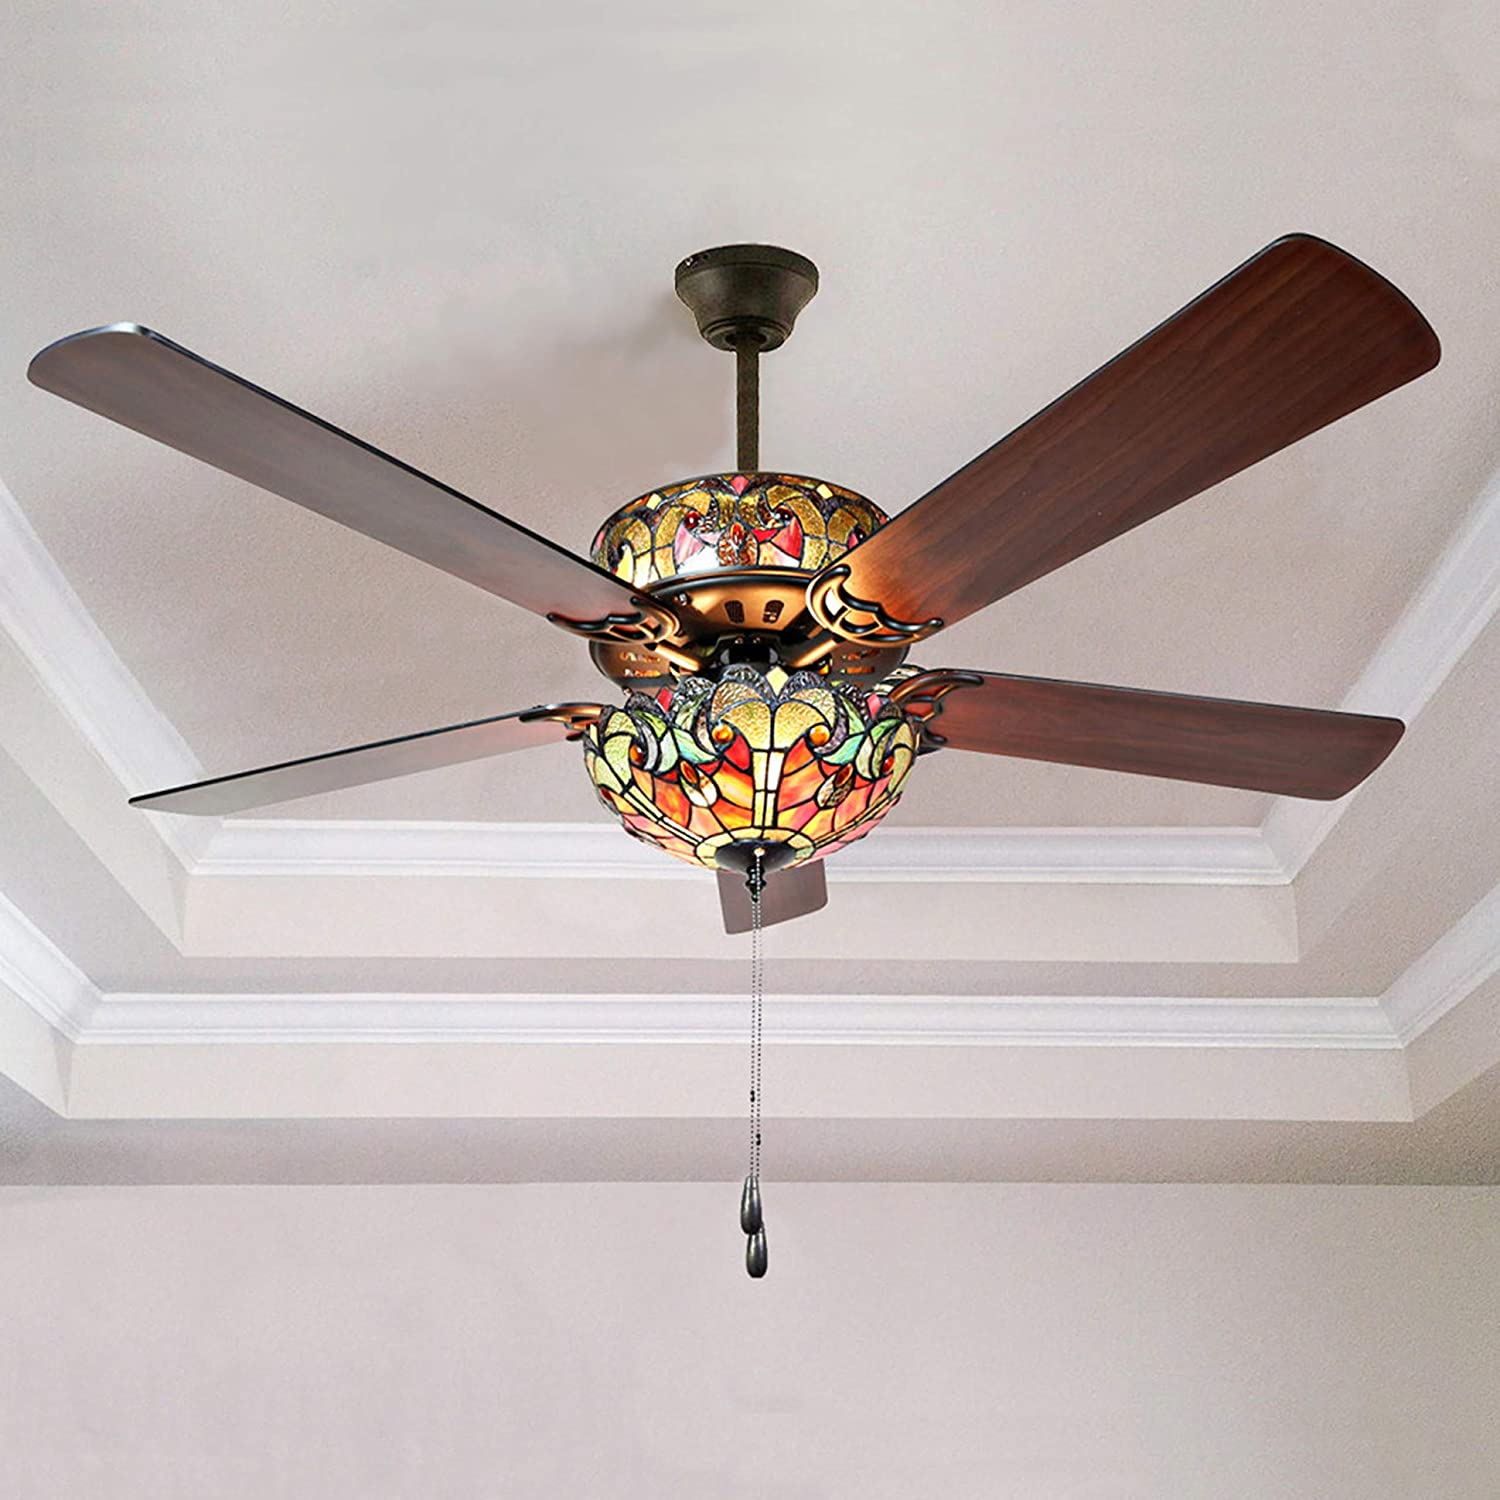 Amazon Com River Of Goods Tiffany Style 52 Inch Width Stained Glass Halston Led Ceiling Fan Spice Kitchen Dining